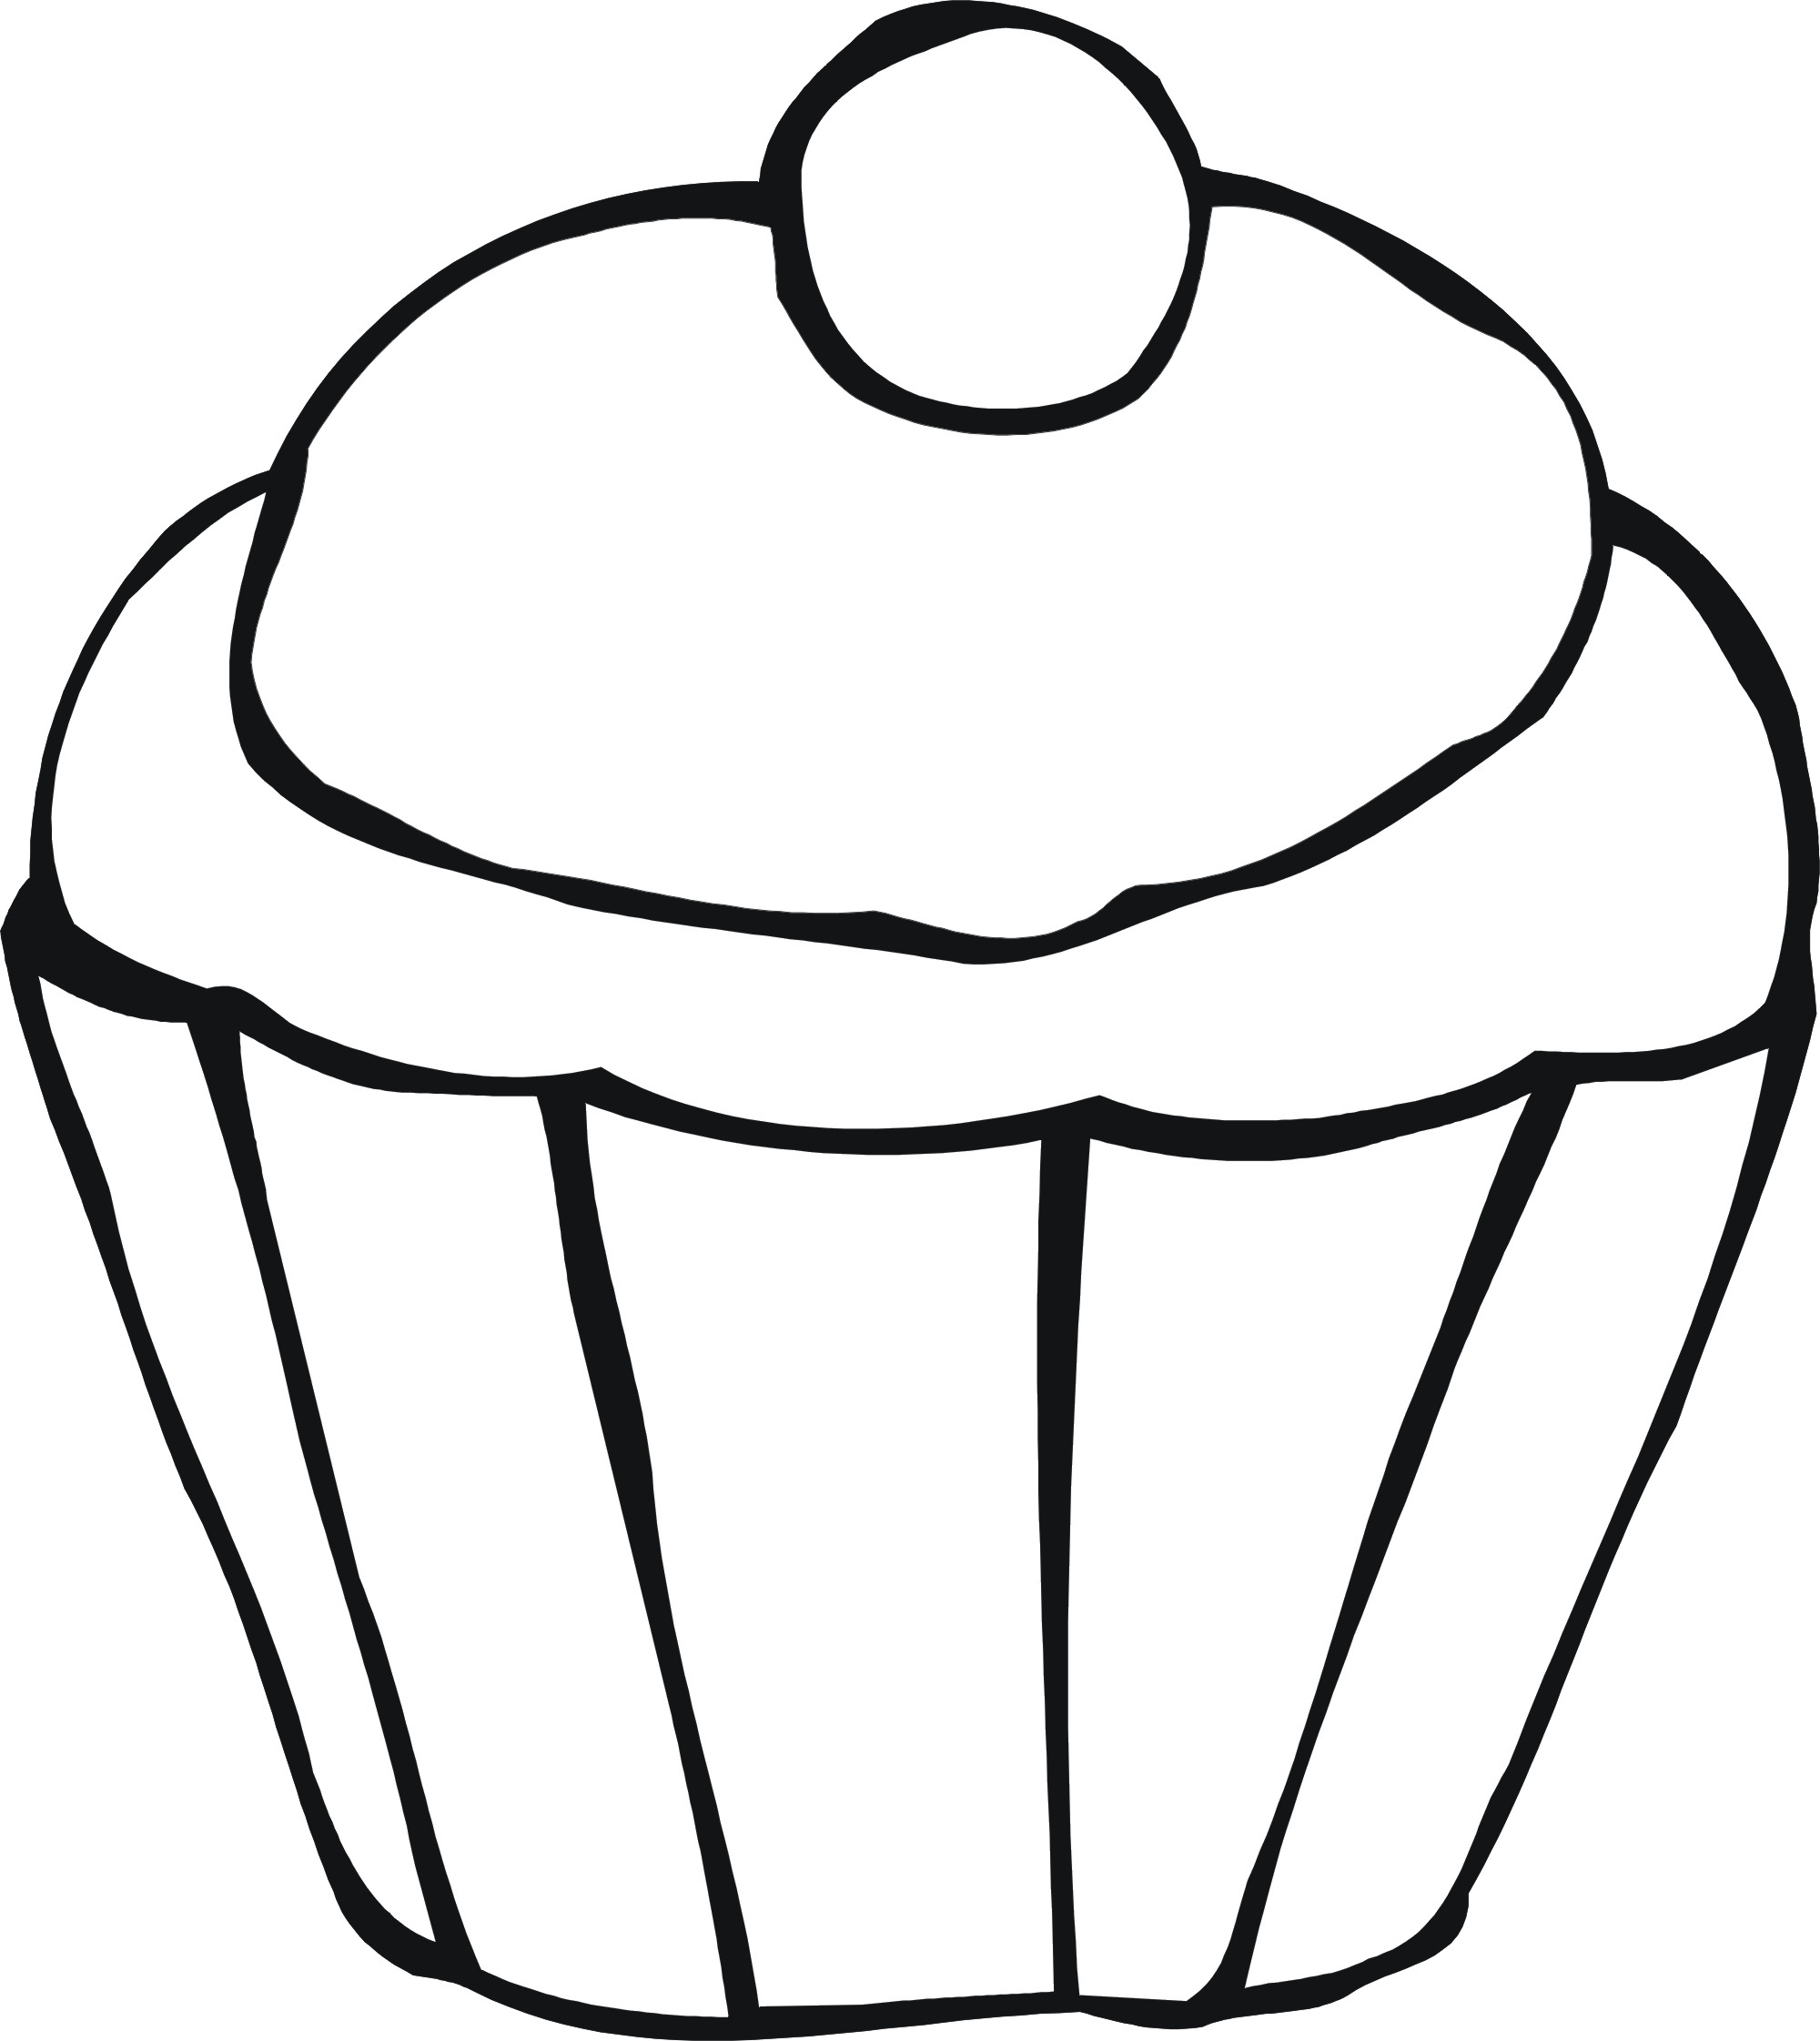 Coloring Pages: Coloring Arts Printable For Preschoolers Free - Free Printable Coloring Pages For Preschoolers